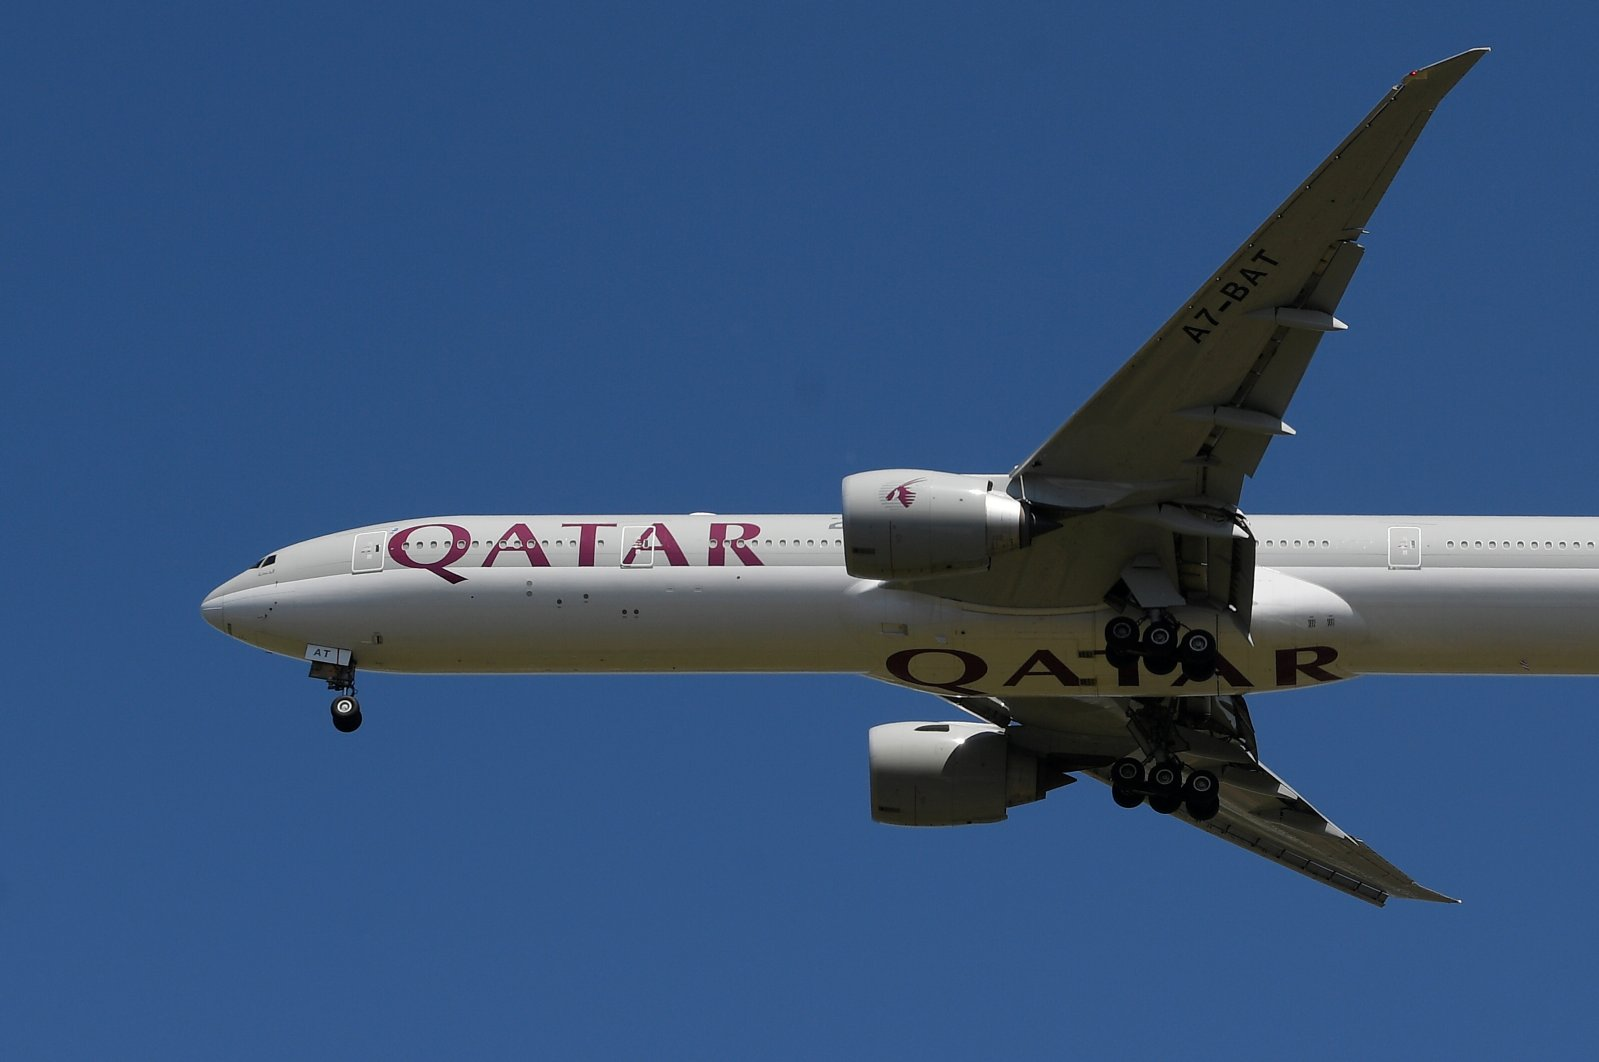 A Qatar Airways passenger plane comes in to land at London's Heathrow Airport during the coronavirus outbreak, London, Britain, May 21, 2020. (Reuters Photo)